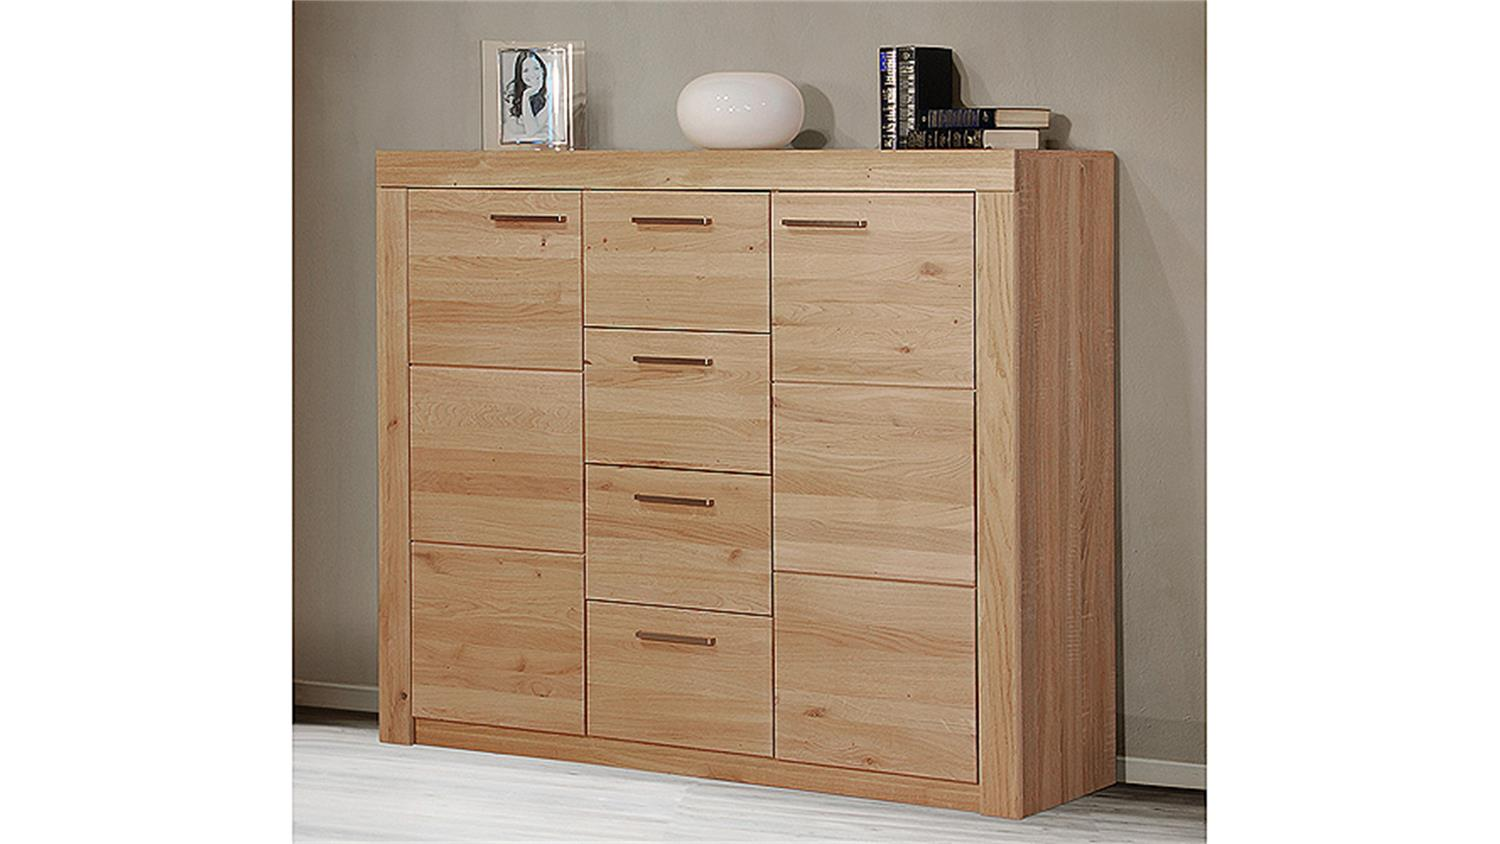 highboard 5 berlin wildeiche massiv sonoma. Black Bedroom Furniture Sets. Home Design Ideas